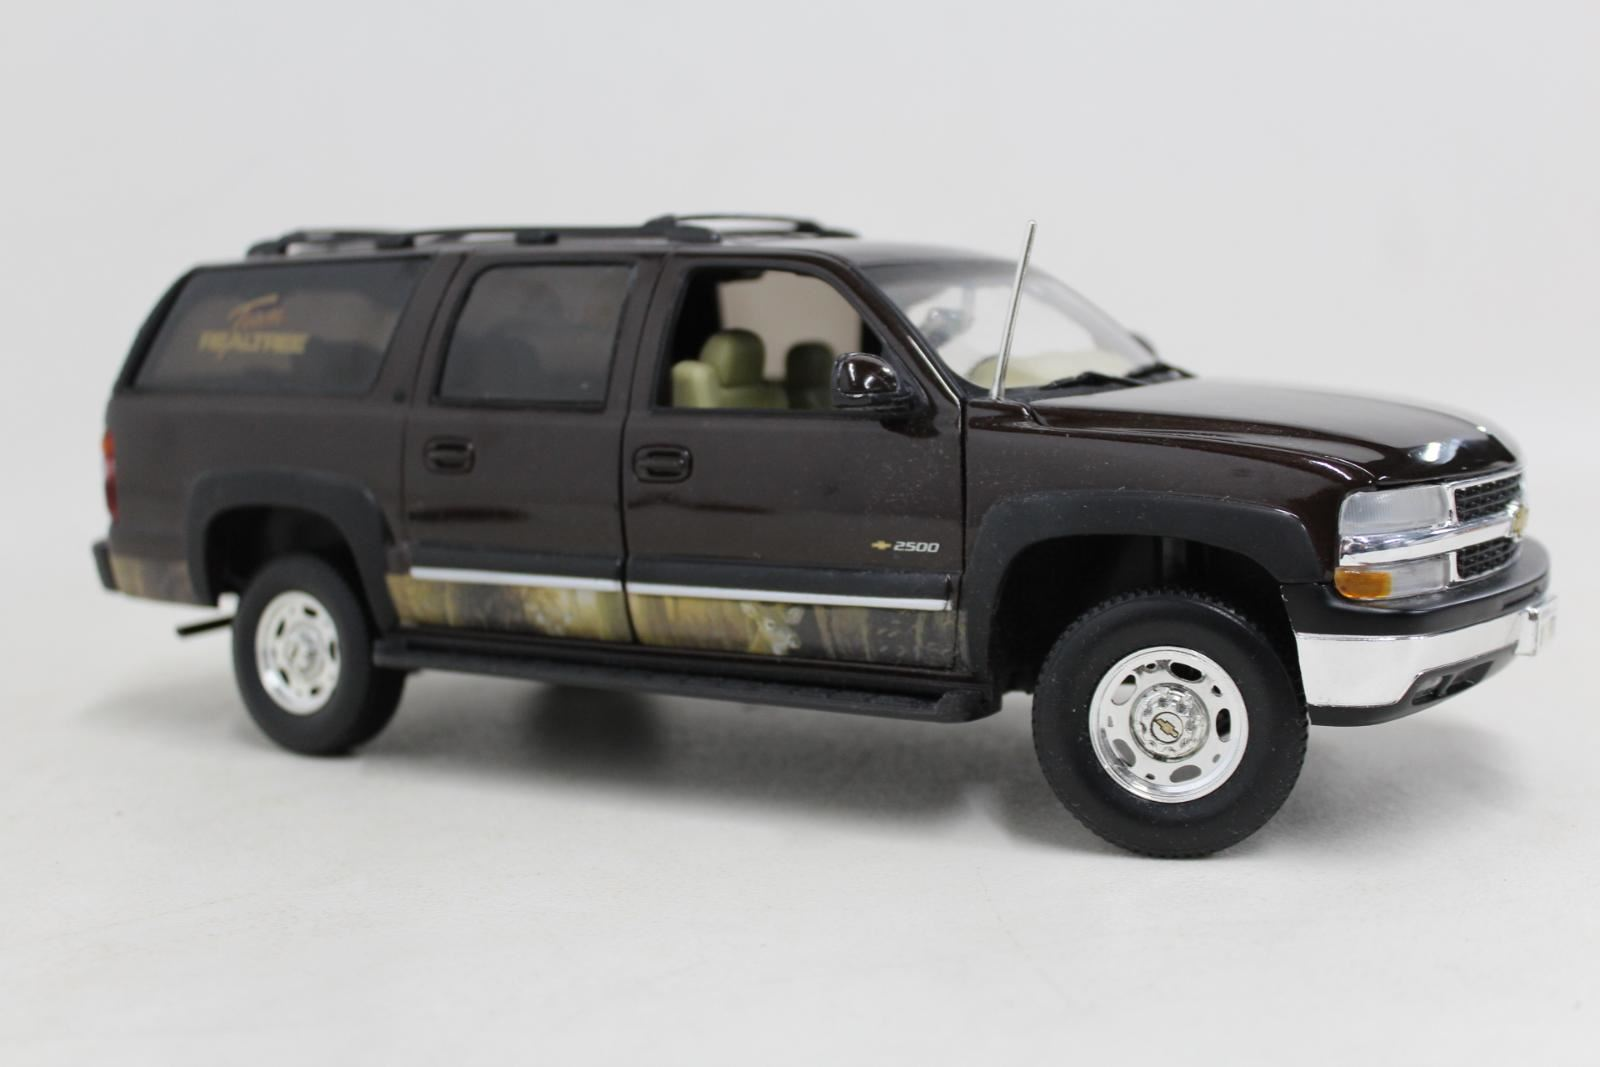 TEAM REALTREE Red Chevrolet Chevy Suburban Sportsman 1 18 ERTL Car Model